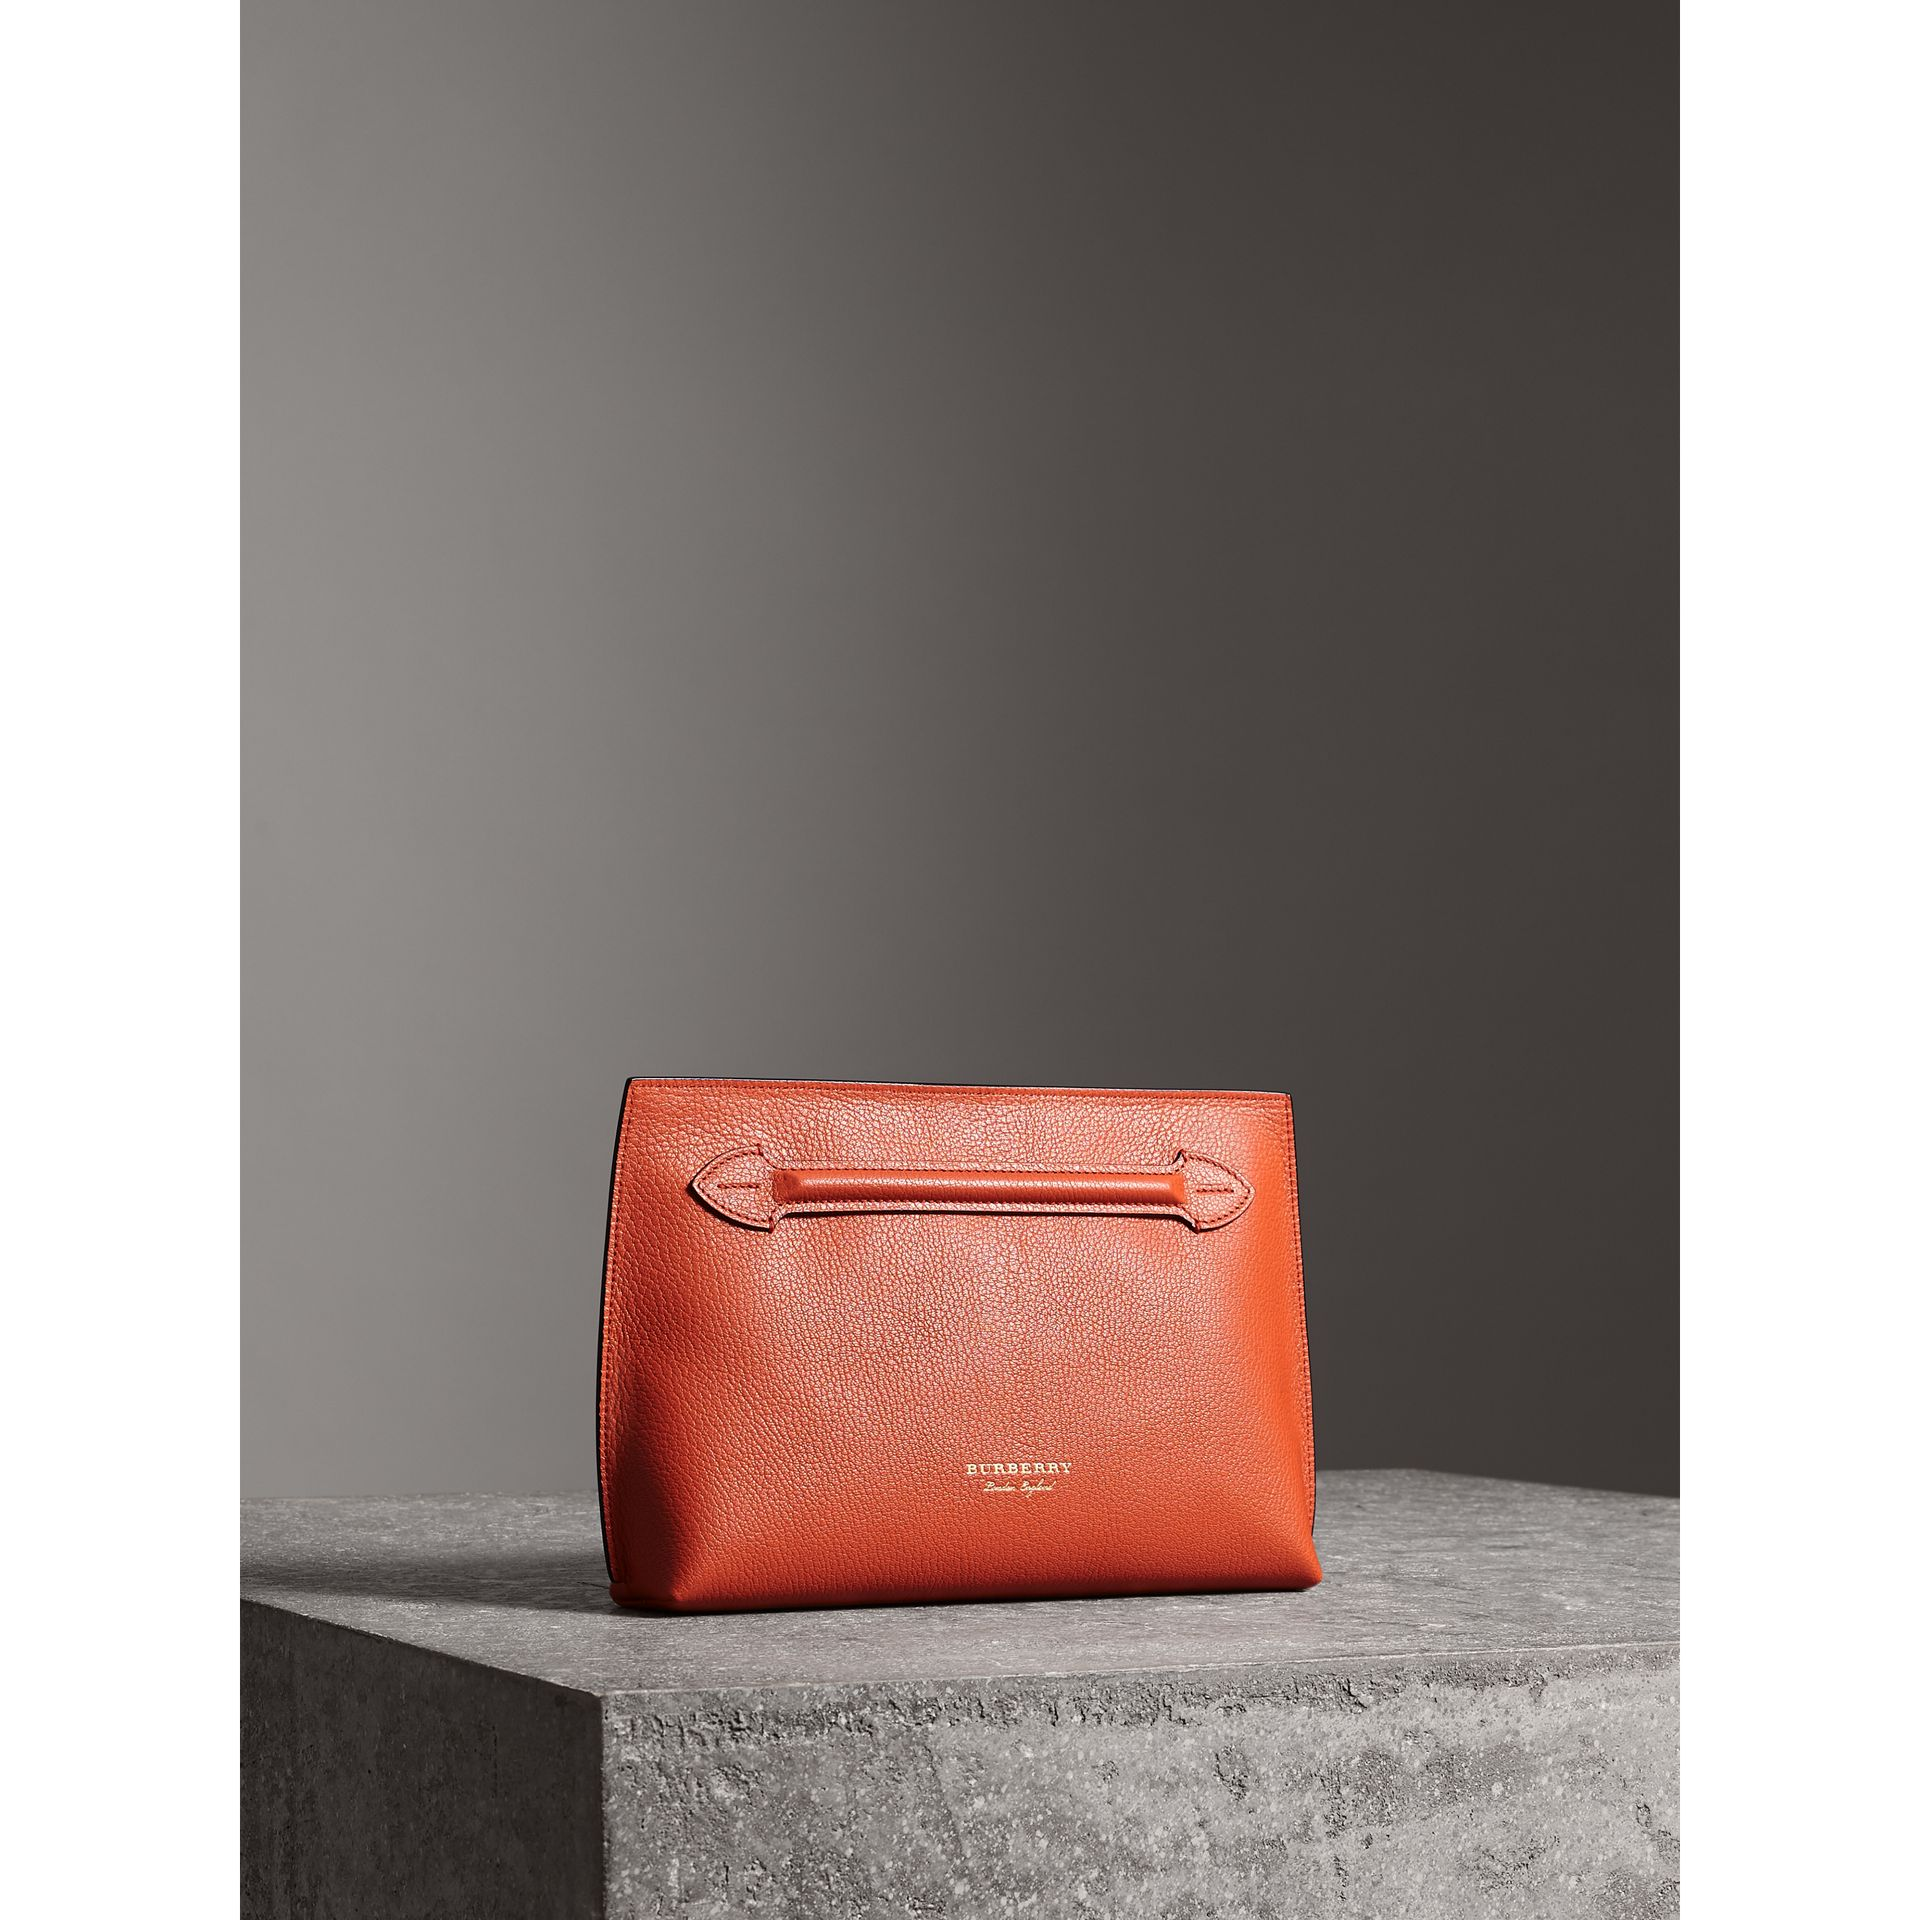 Grainy Leather Wristlet Clutch in Clementine - Women | Burberry Australia - gallery image 8